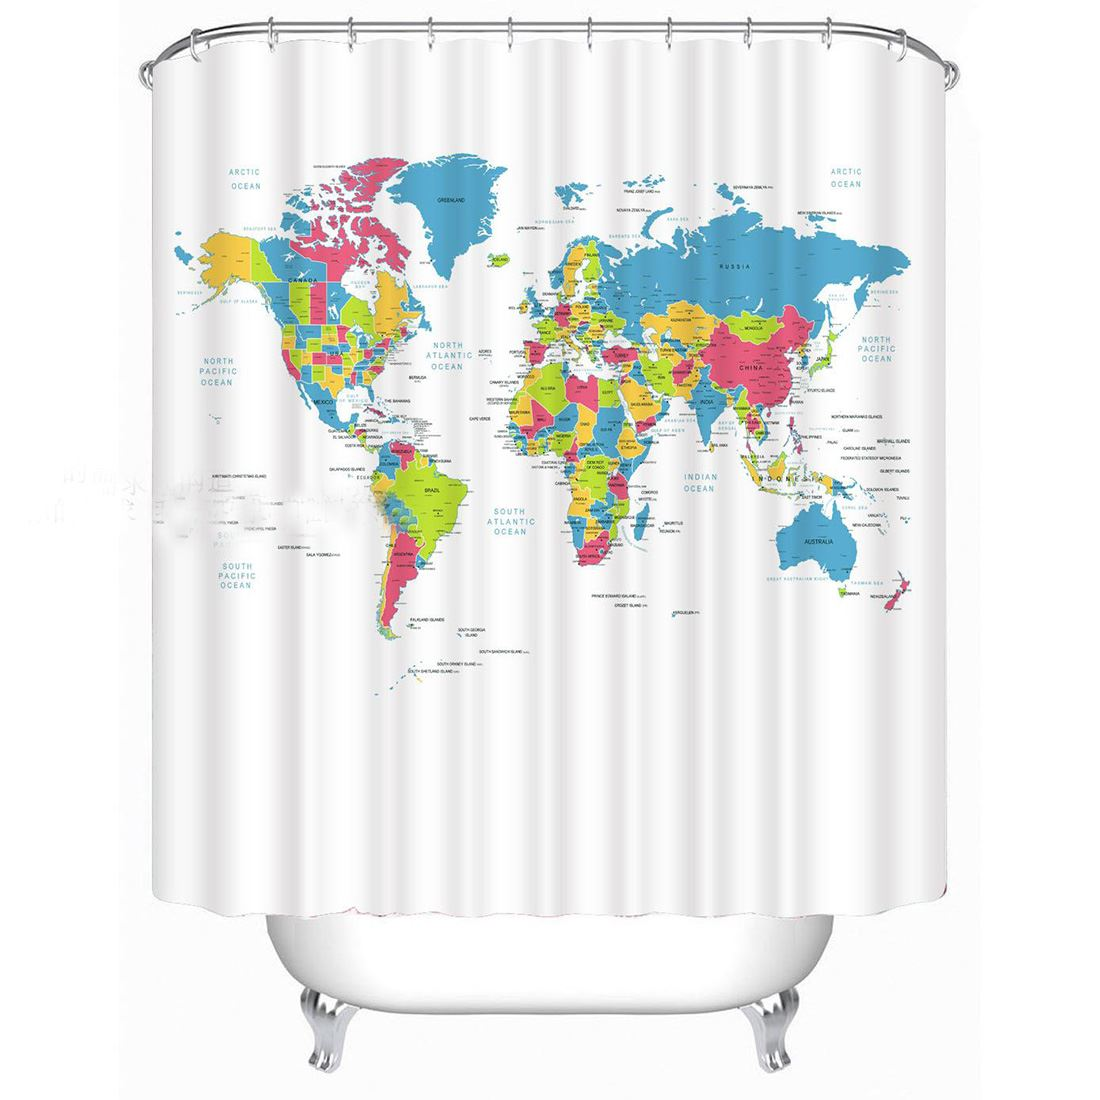 100 ideas world map shower curtain ebay on christmashappynewyears world map waterproof polyster shower curtain ebay gumiabroncs Gallery